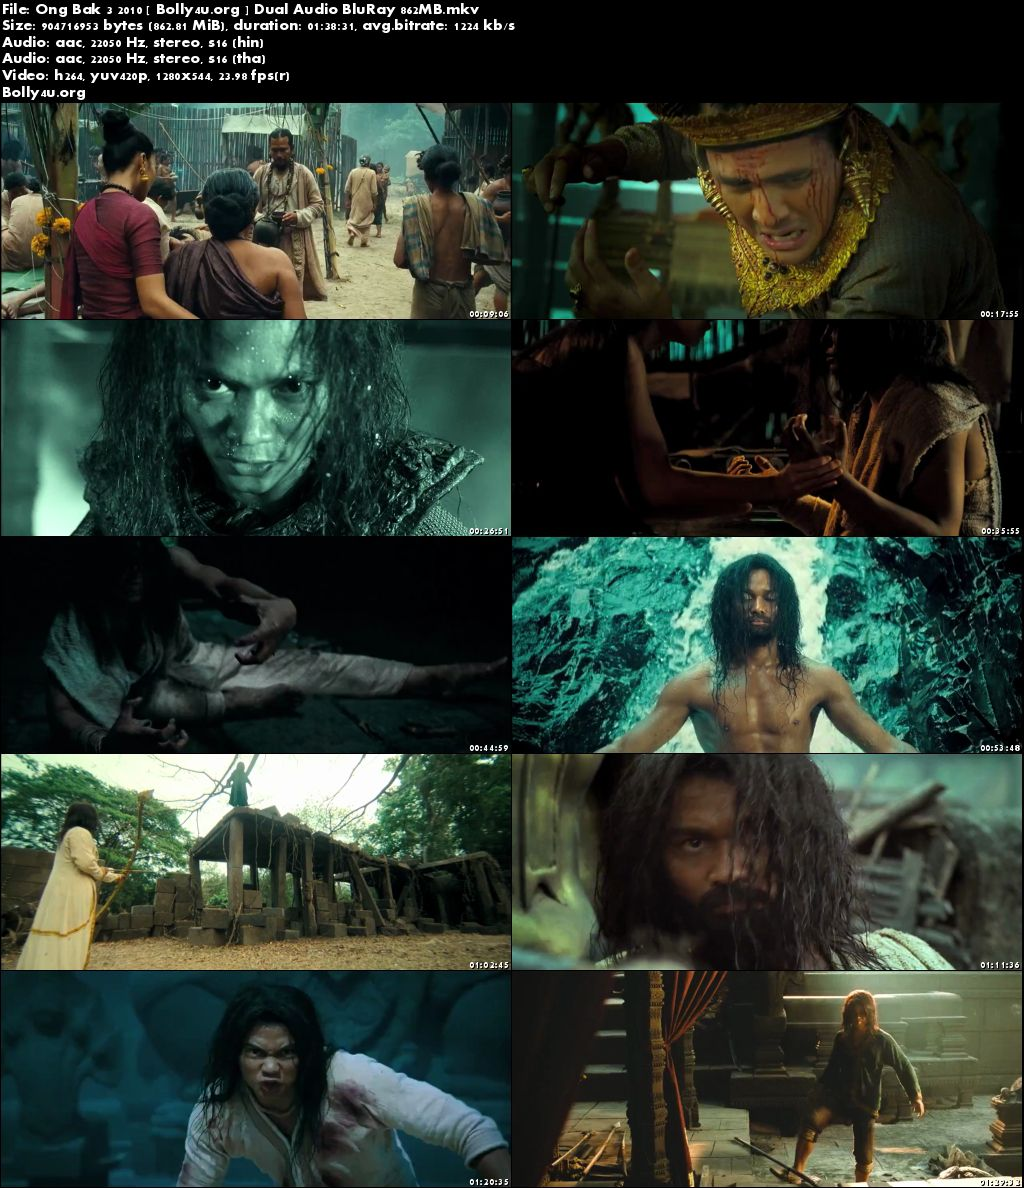 Ong Bak 3 2010 BluRay 850MB Hindi Dual Audio 720p Download